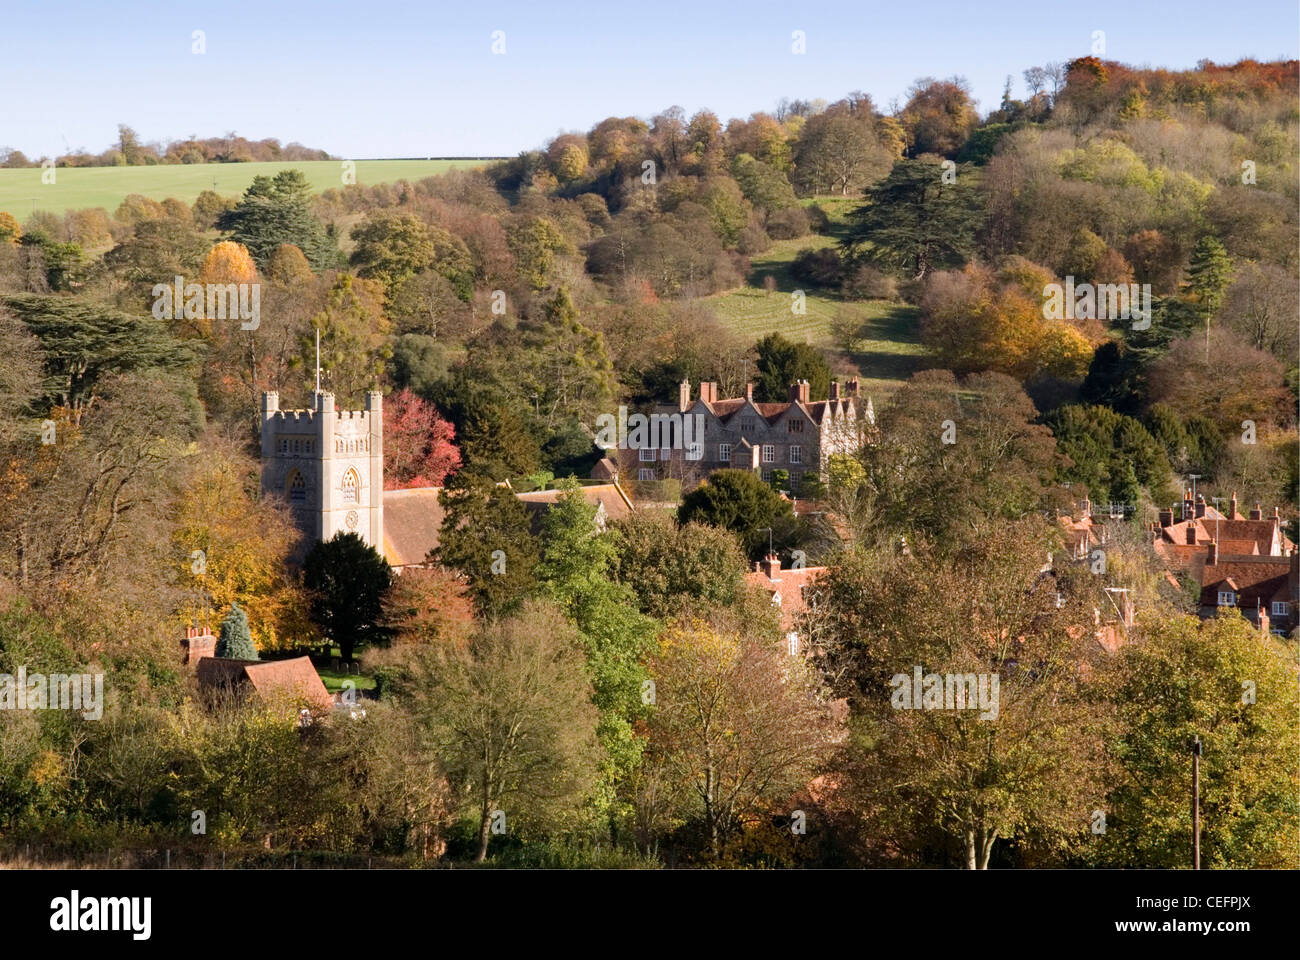 Chiltern Hills - Hambleden village - seen in context with its surroundings - wooded hillsides - autumn colours - Stock Image